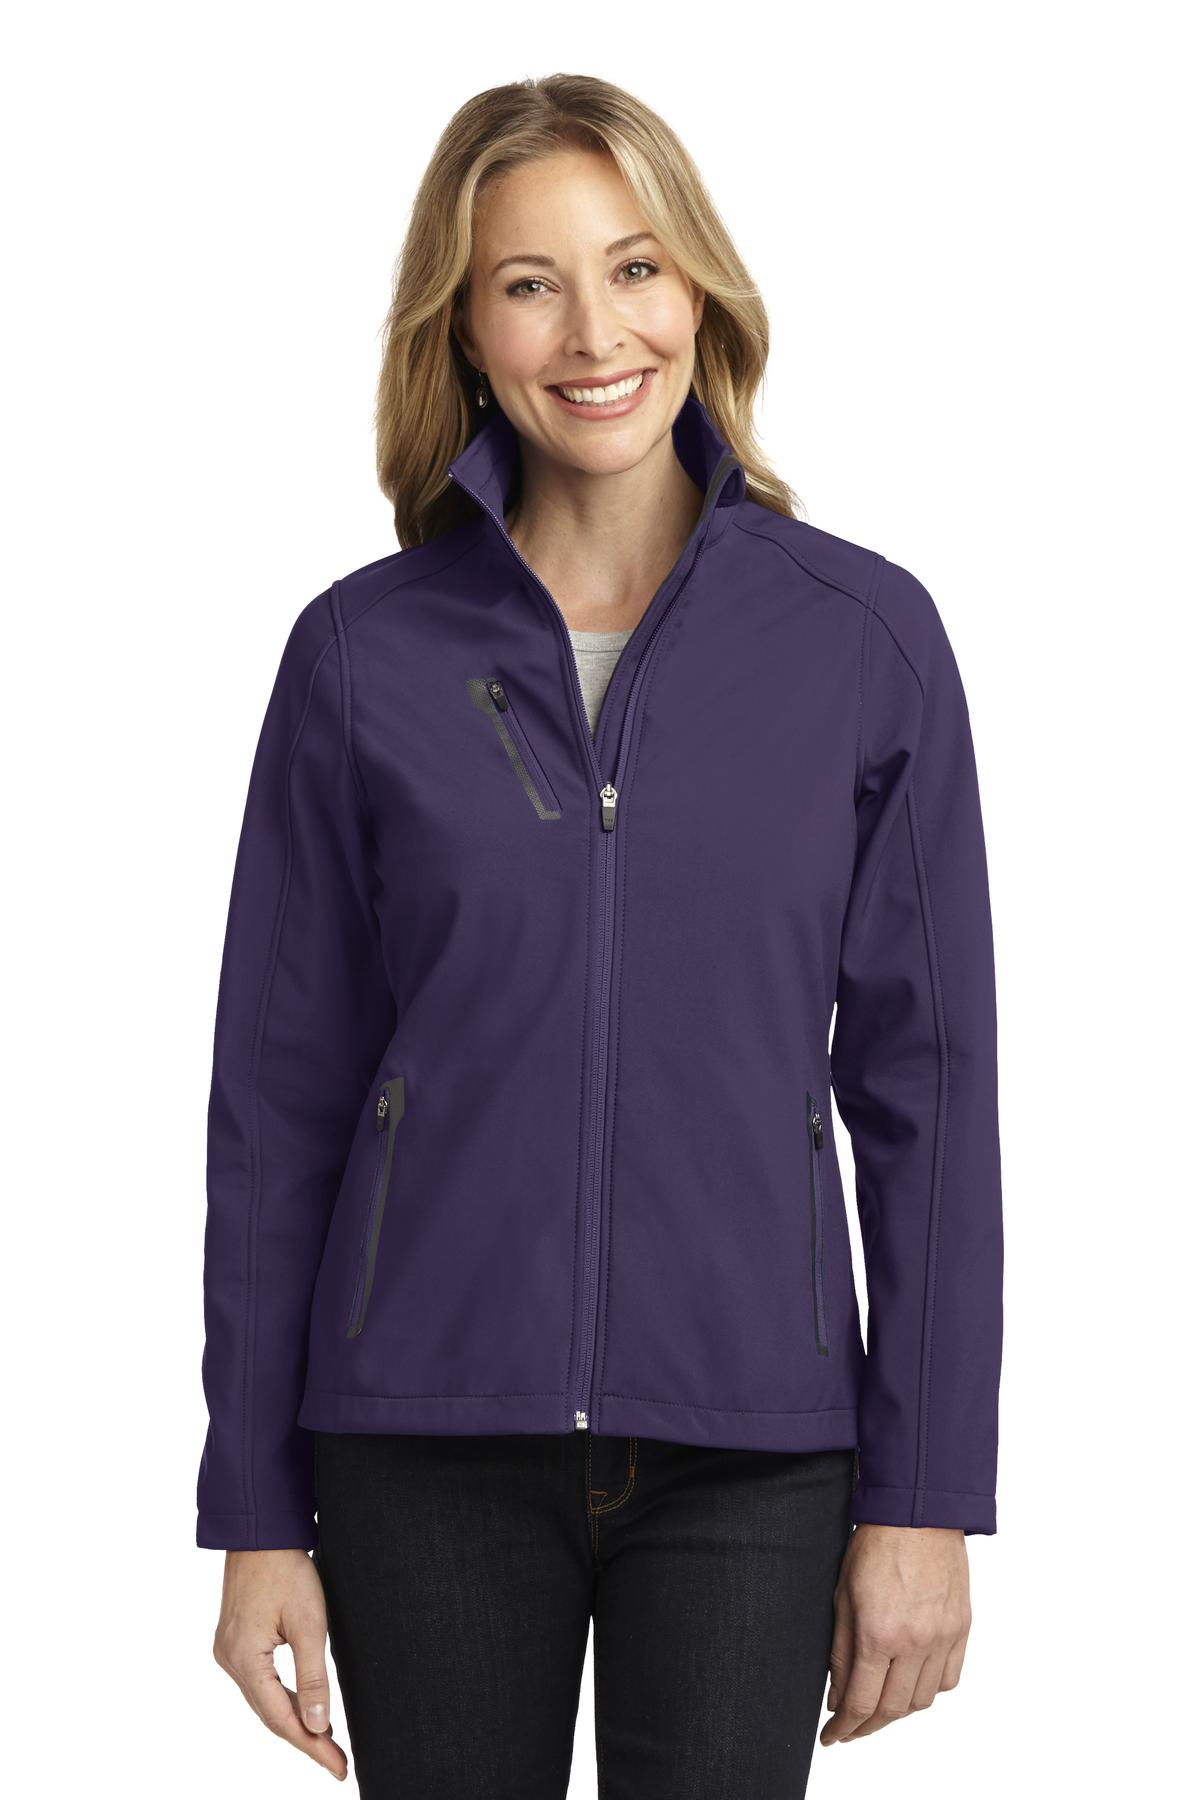 Outerwear-Soft-Shells-2